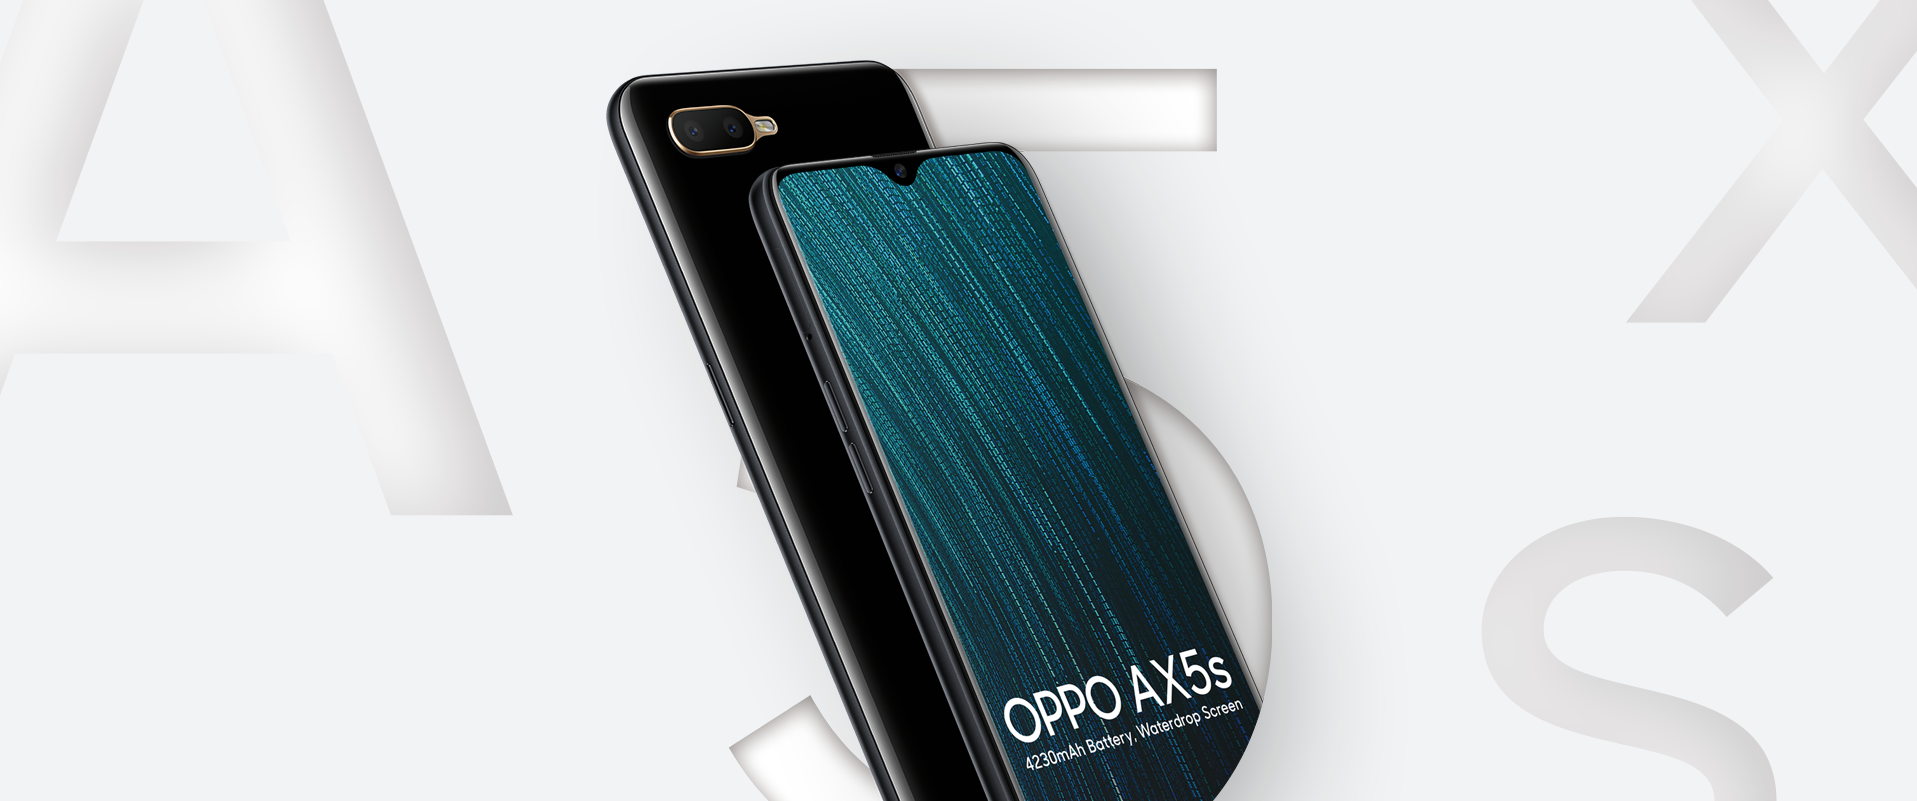 OPPO Mobile for Smartphones & Accessories - OPPO New Zealand